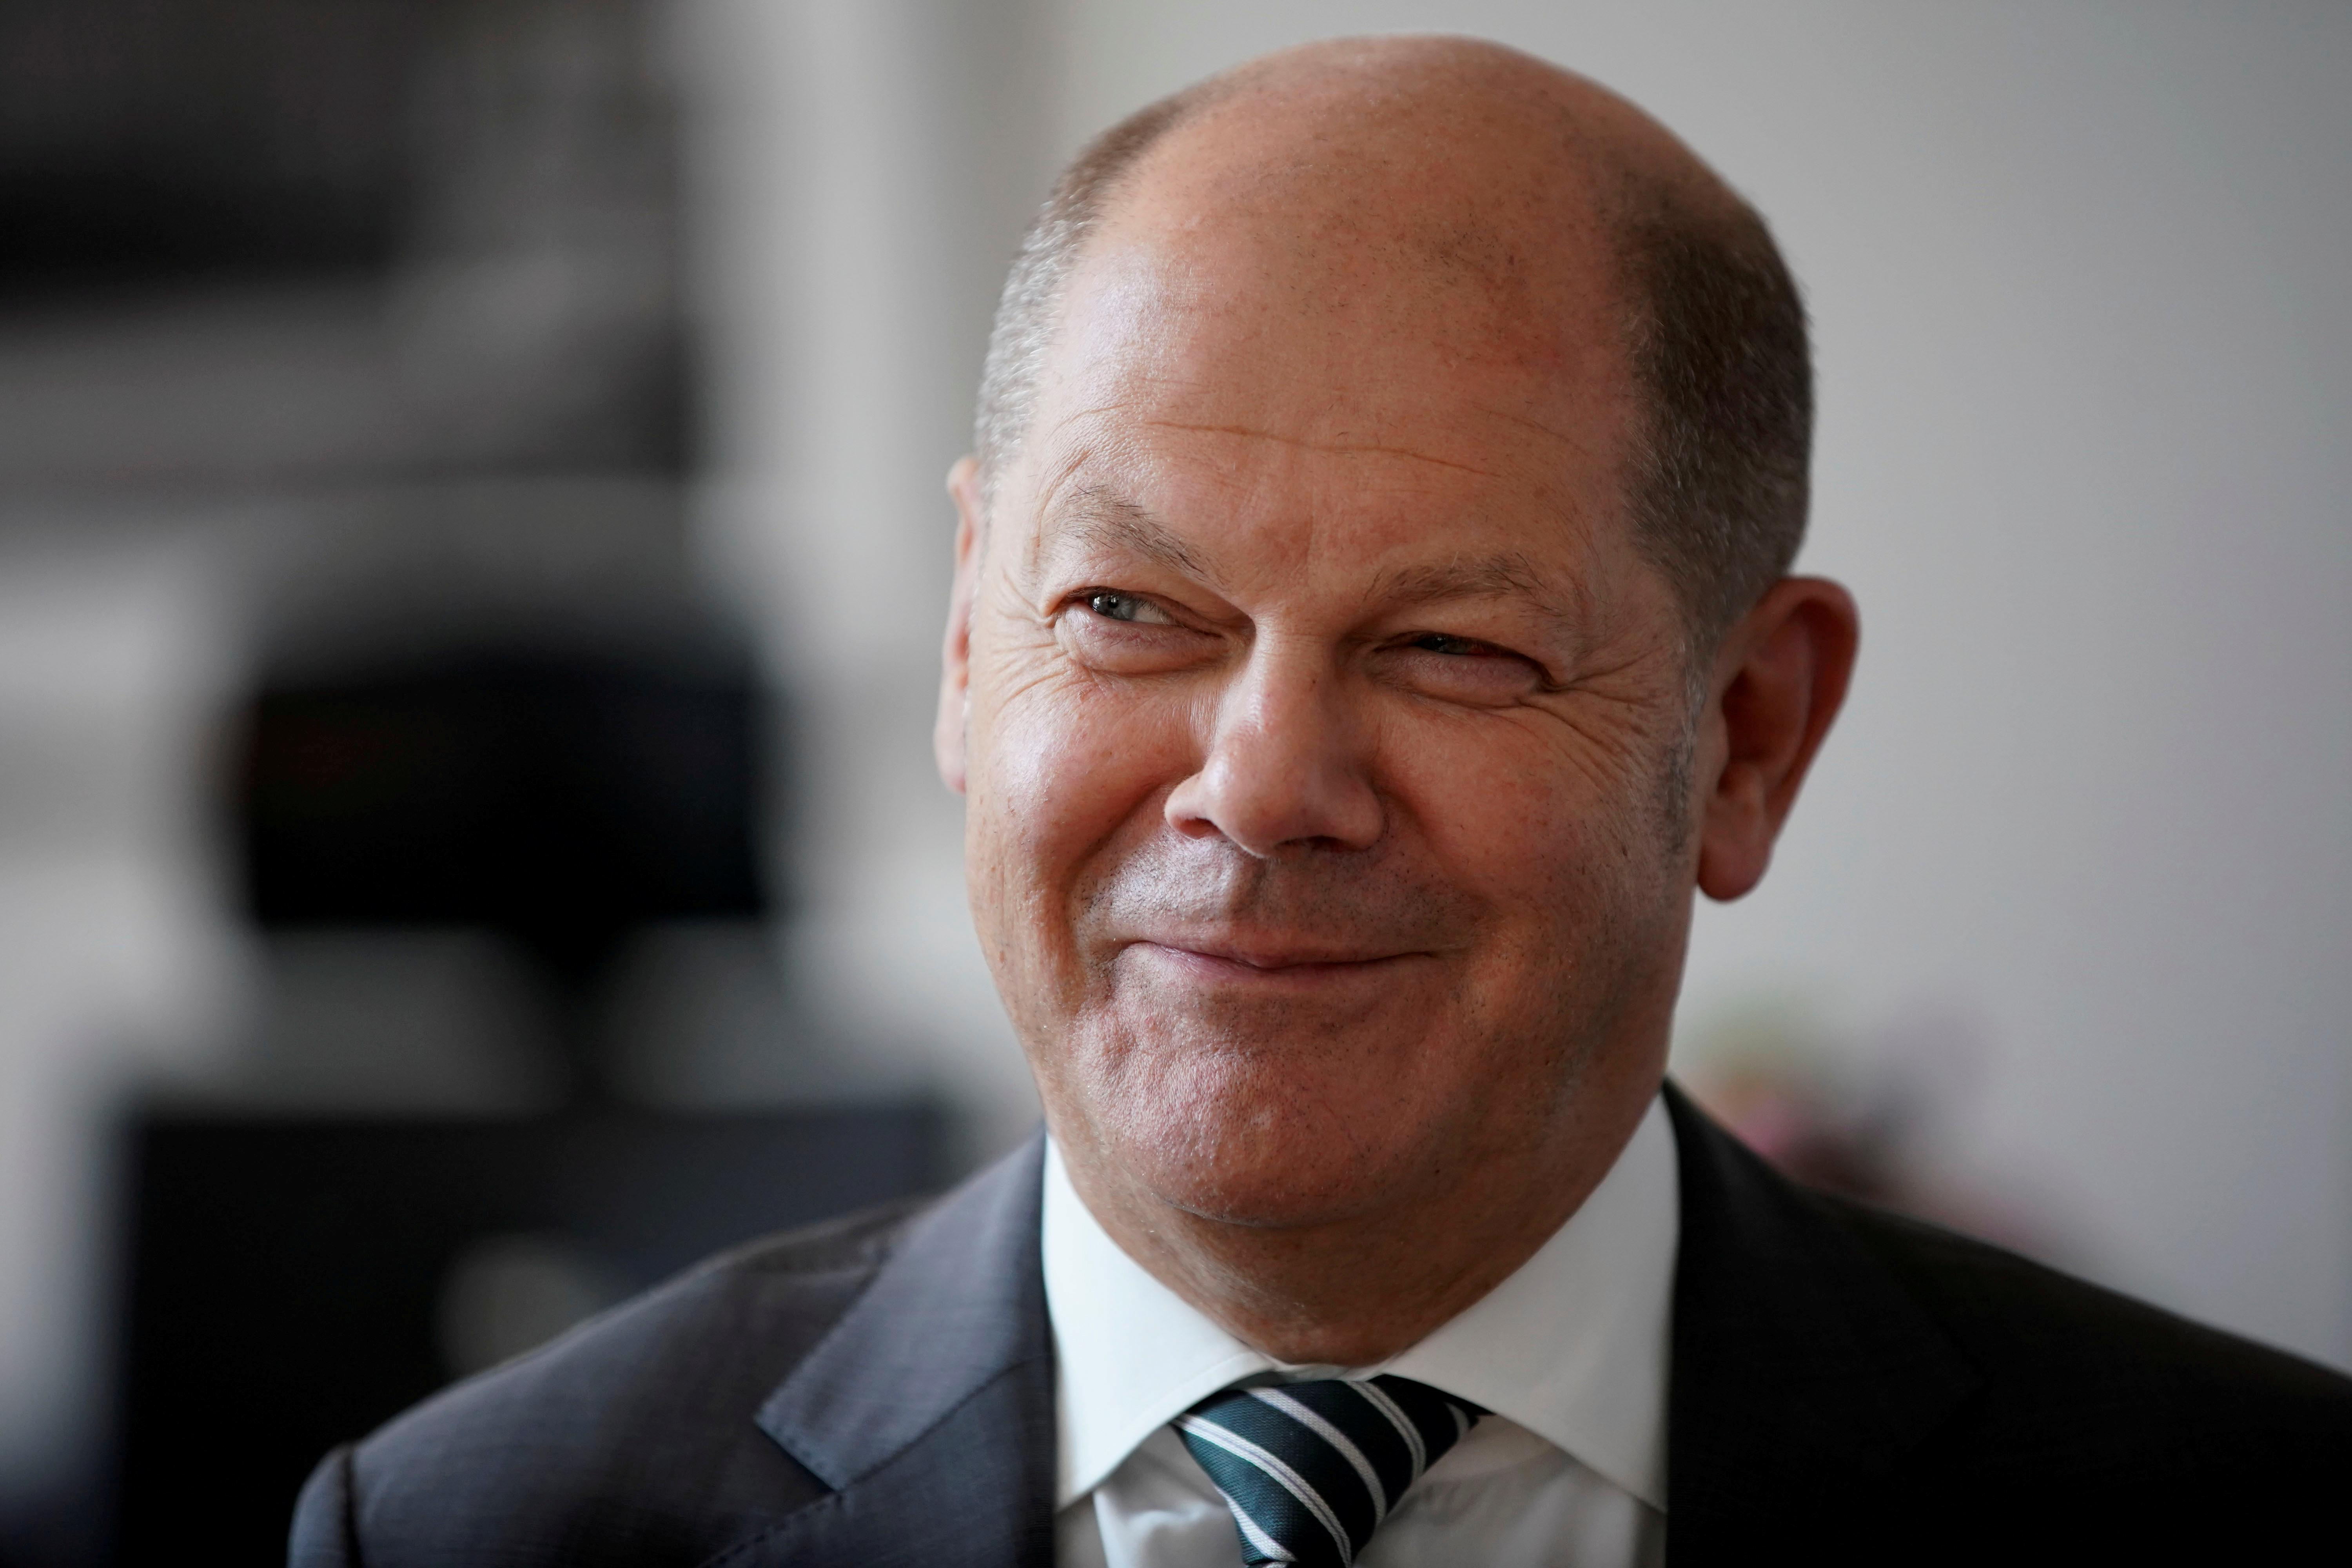 Scholz wants to remain finance minister despite SPD leadership candidacy: RND